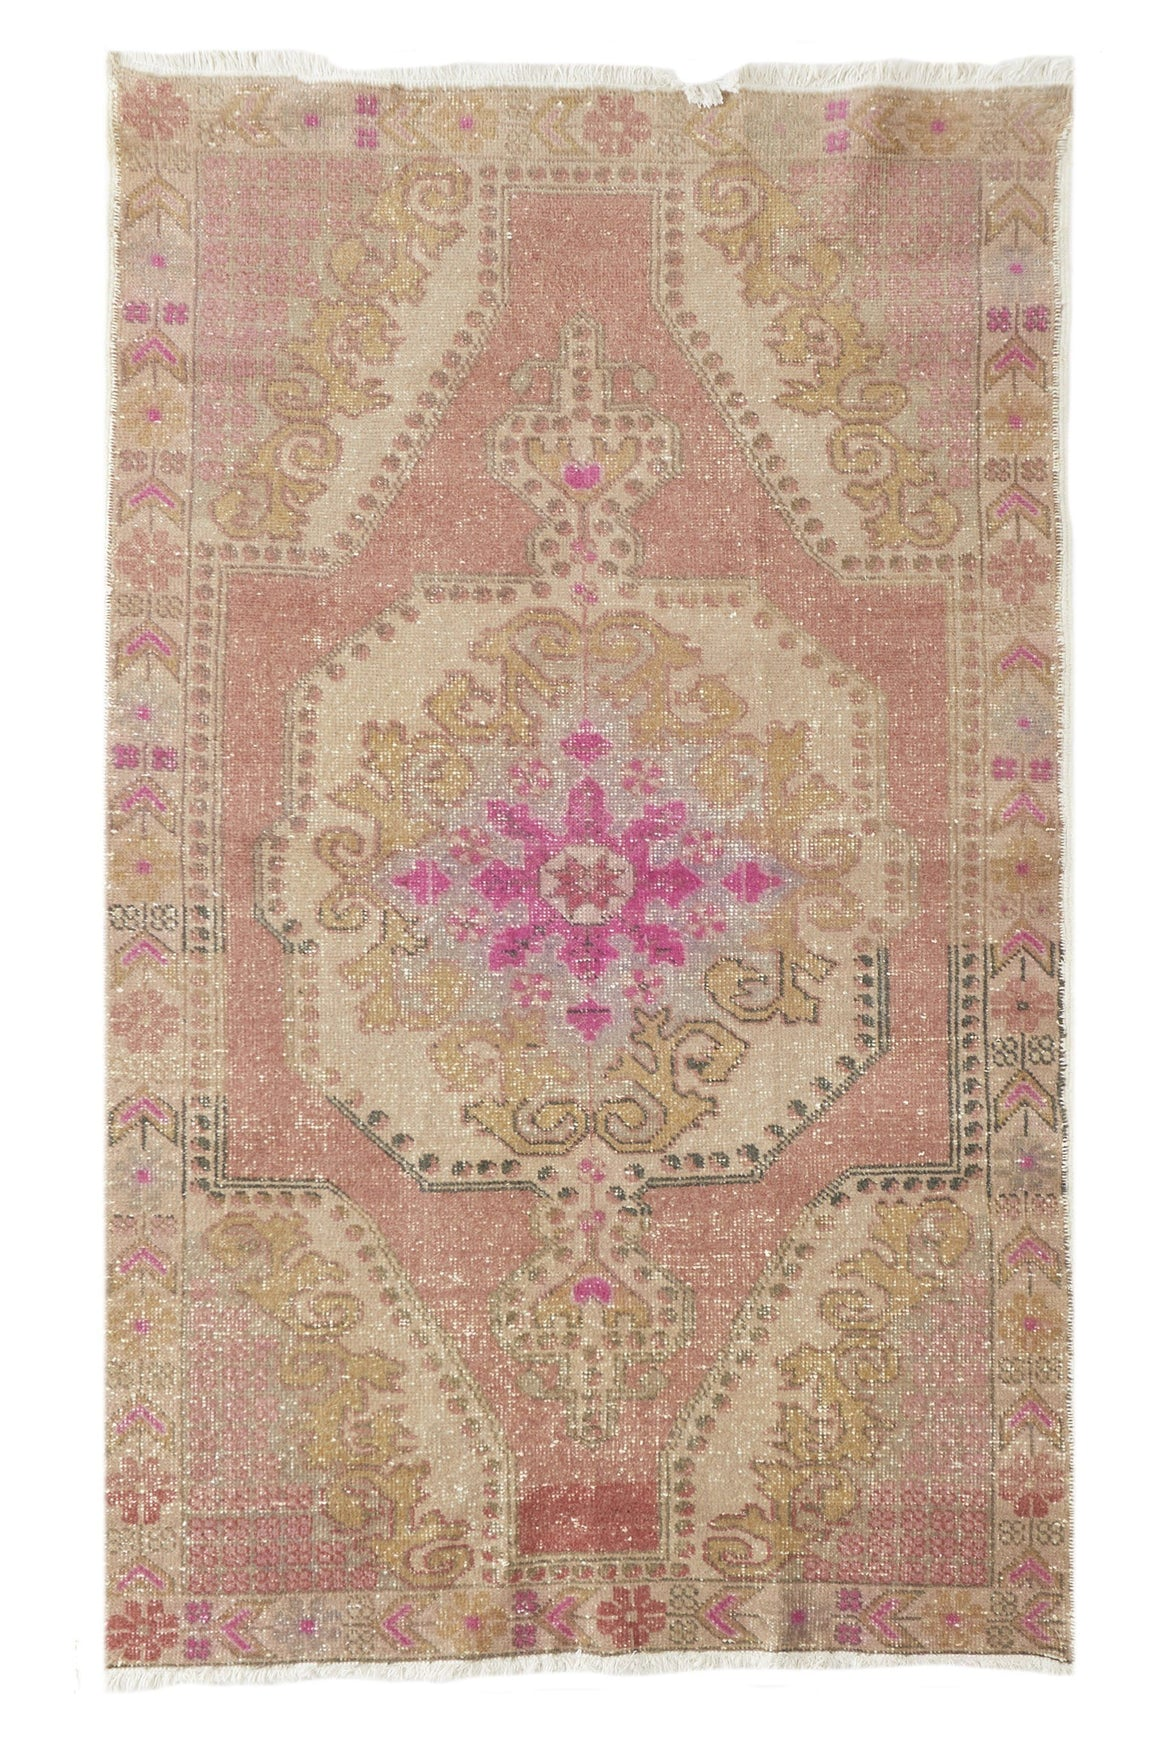 "'Starlight' Vintage Turkish  Rug - 4'5"" x 7'4"""